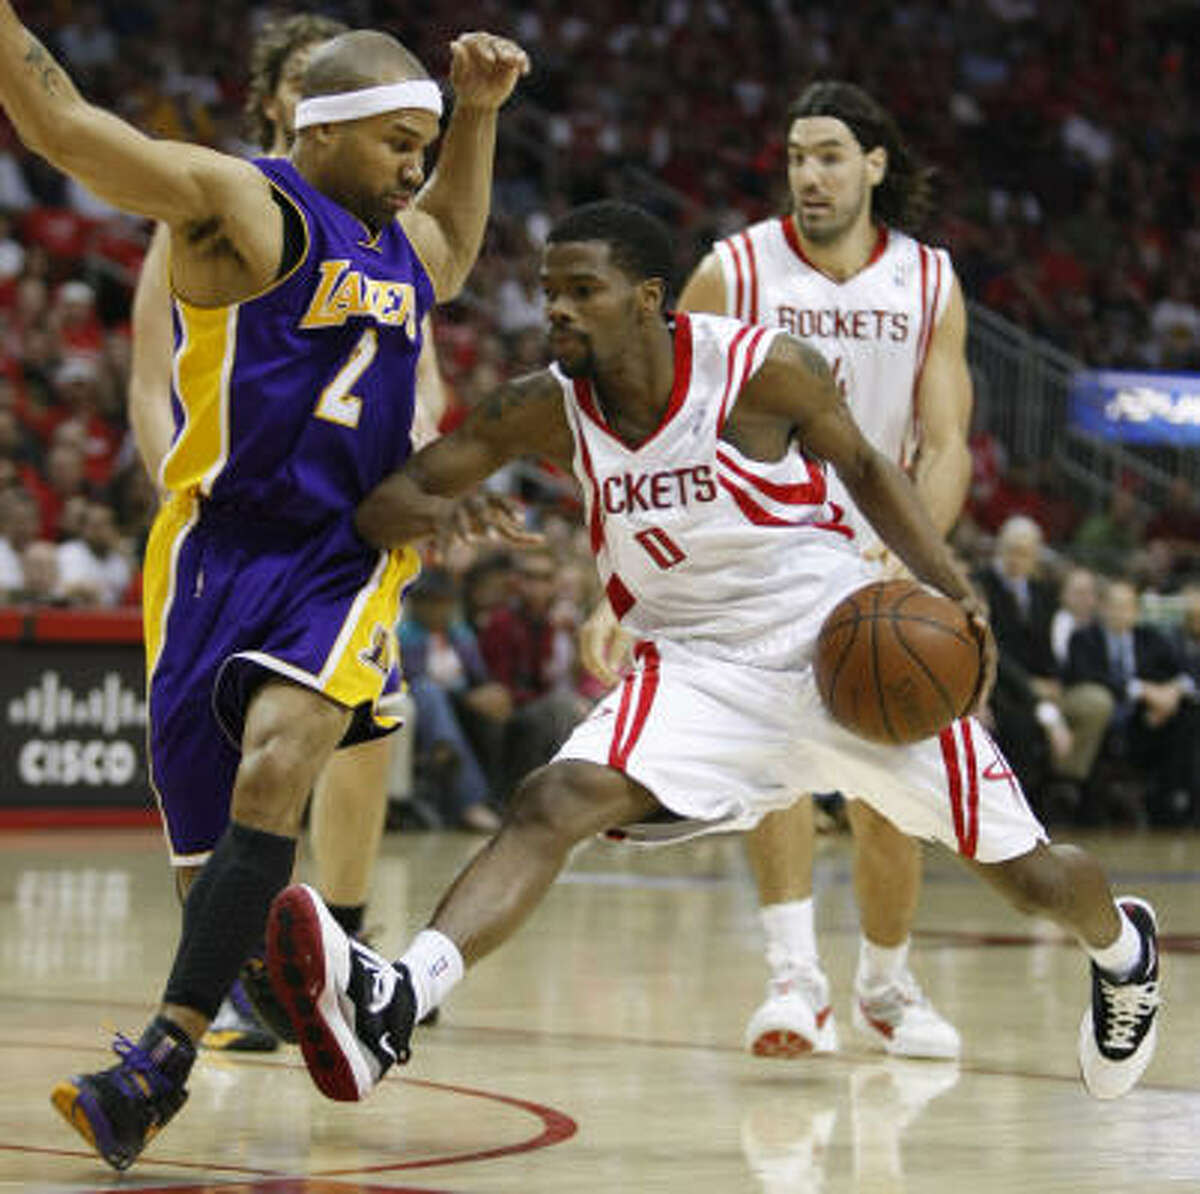 While the Rockets' Game 4 victory over the Lakers on Sunday ranks as a high point in the team's recent history, they probably need another victory or two in their best-of-seven series to join the list of Houston's most improbable victors.